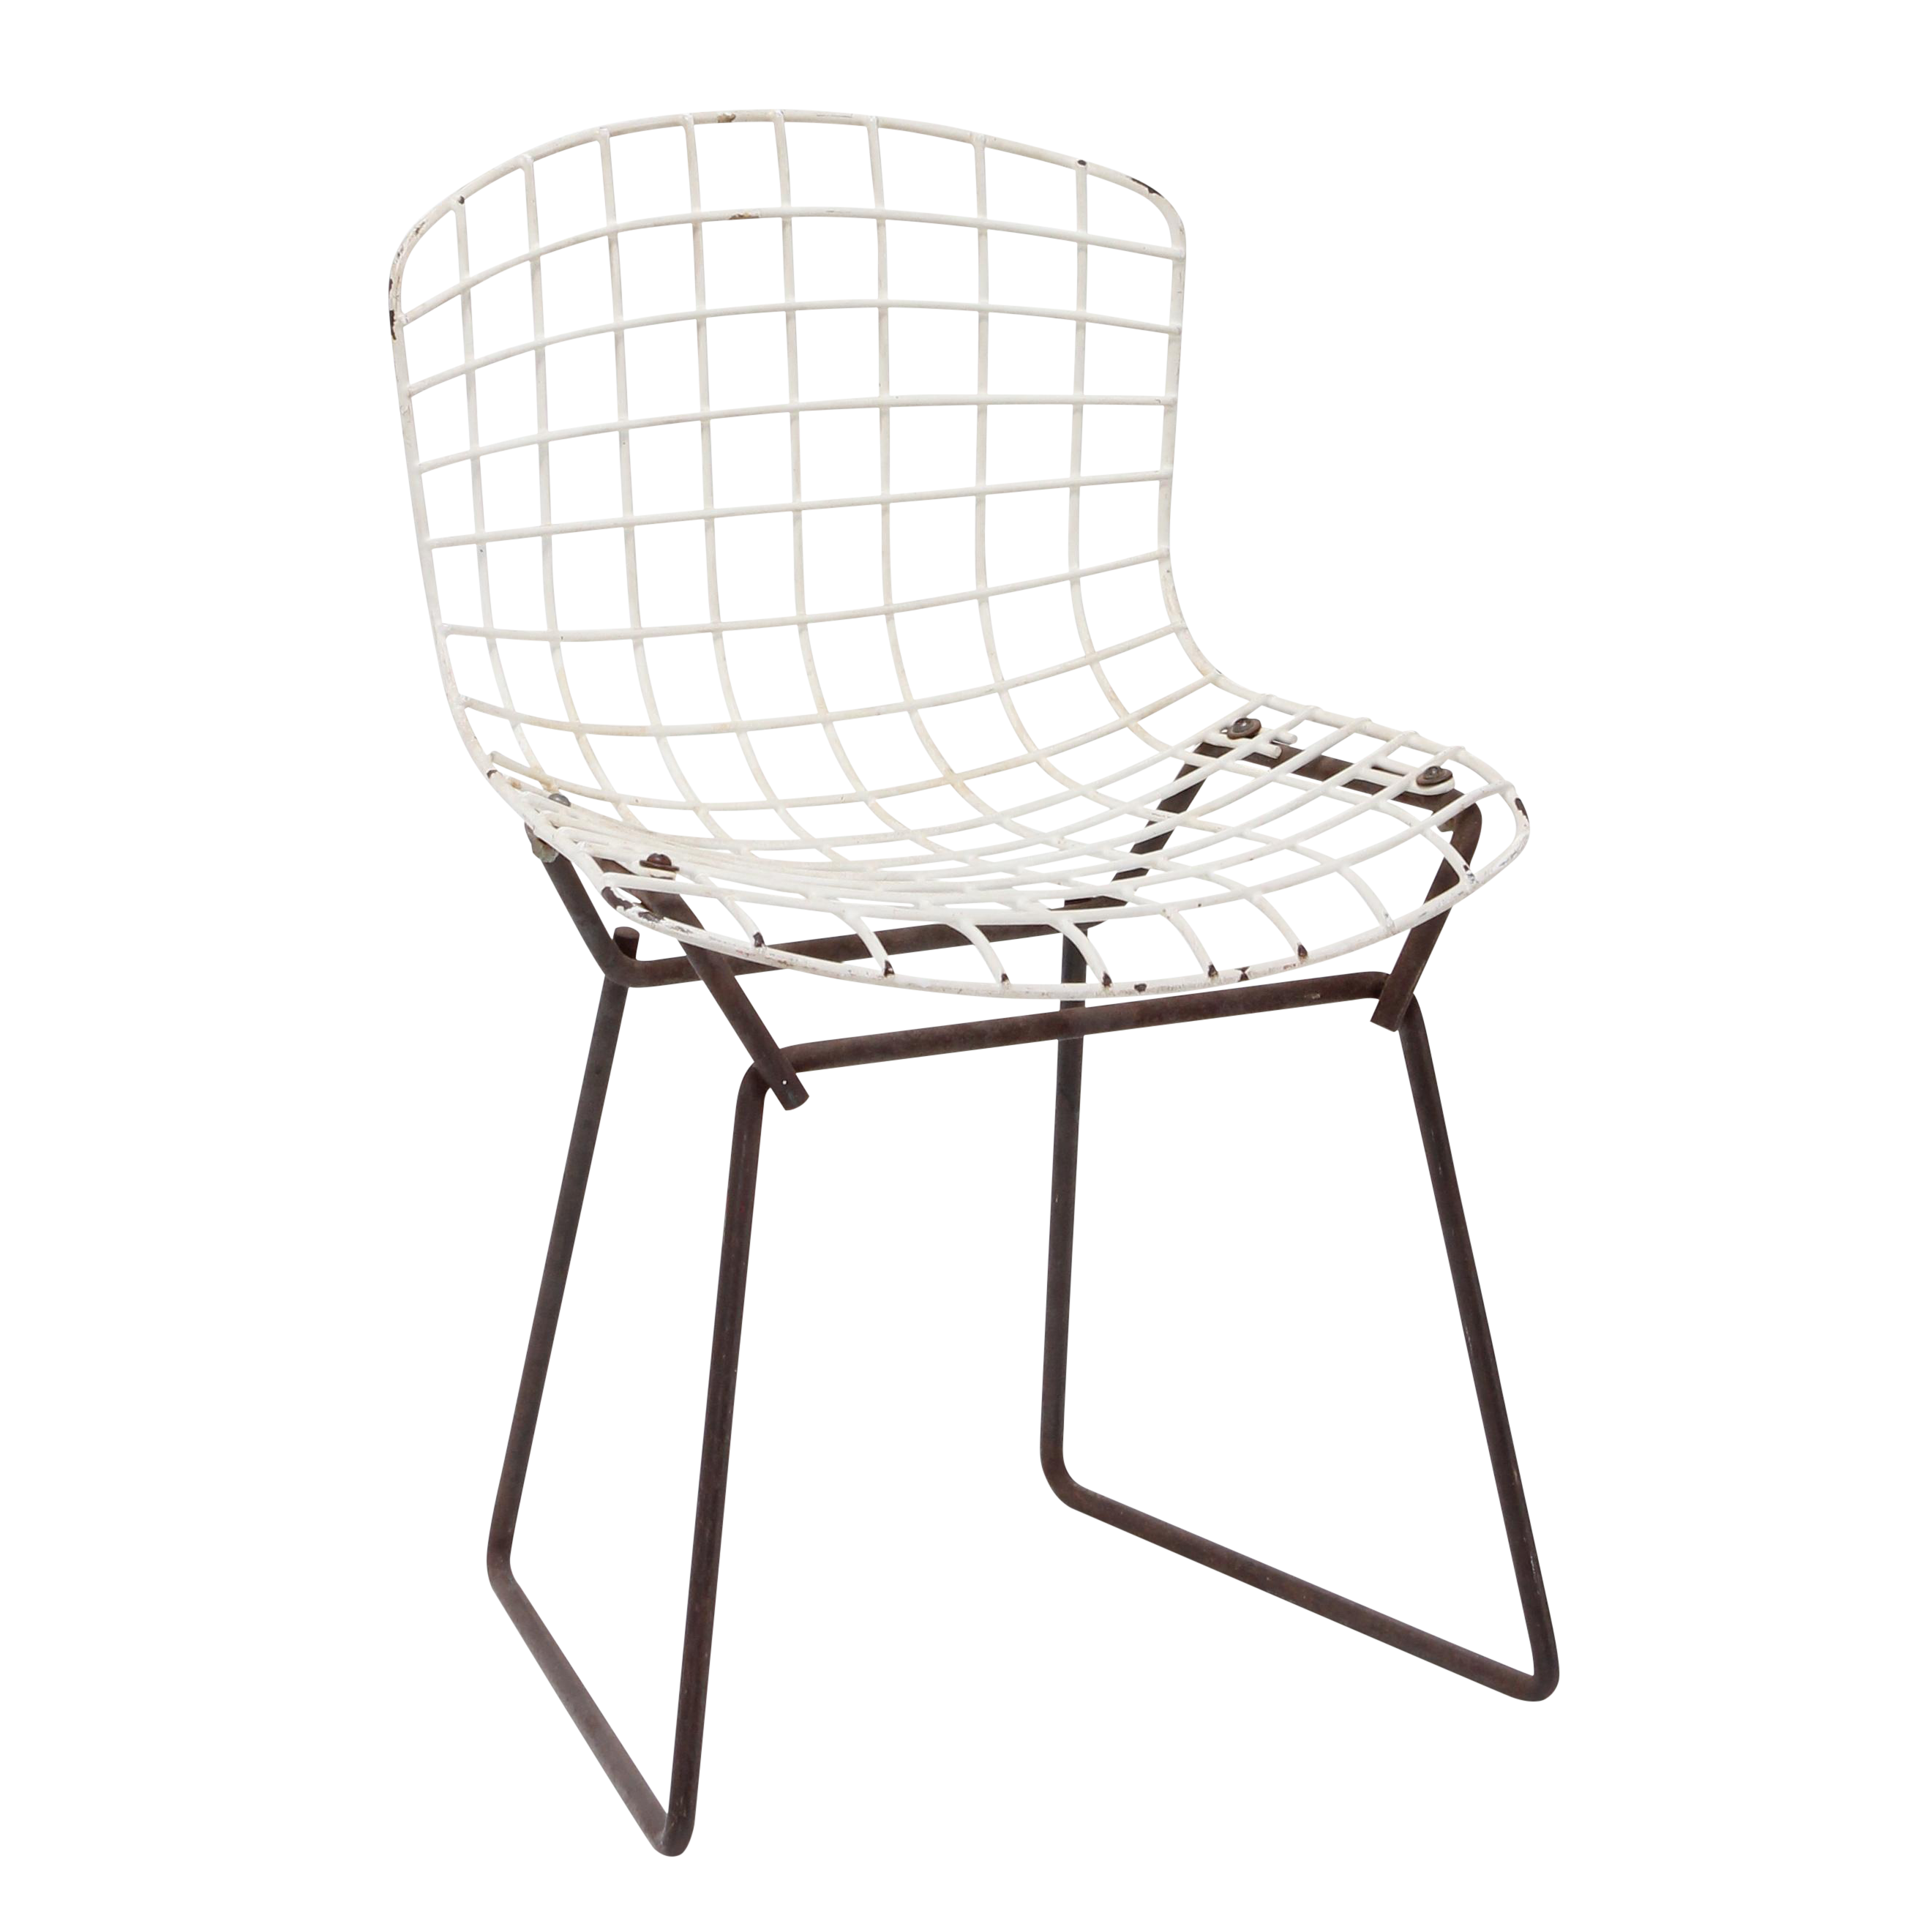 Knoll Bertoia Child Size Chair Black/White   Image 1 Of 11